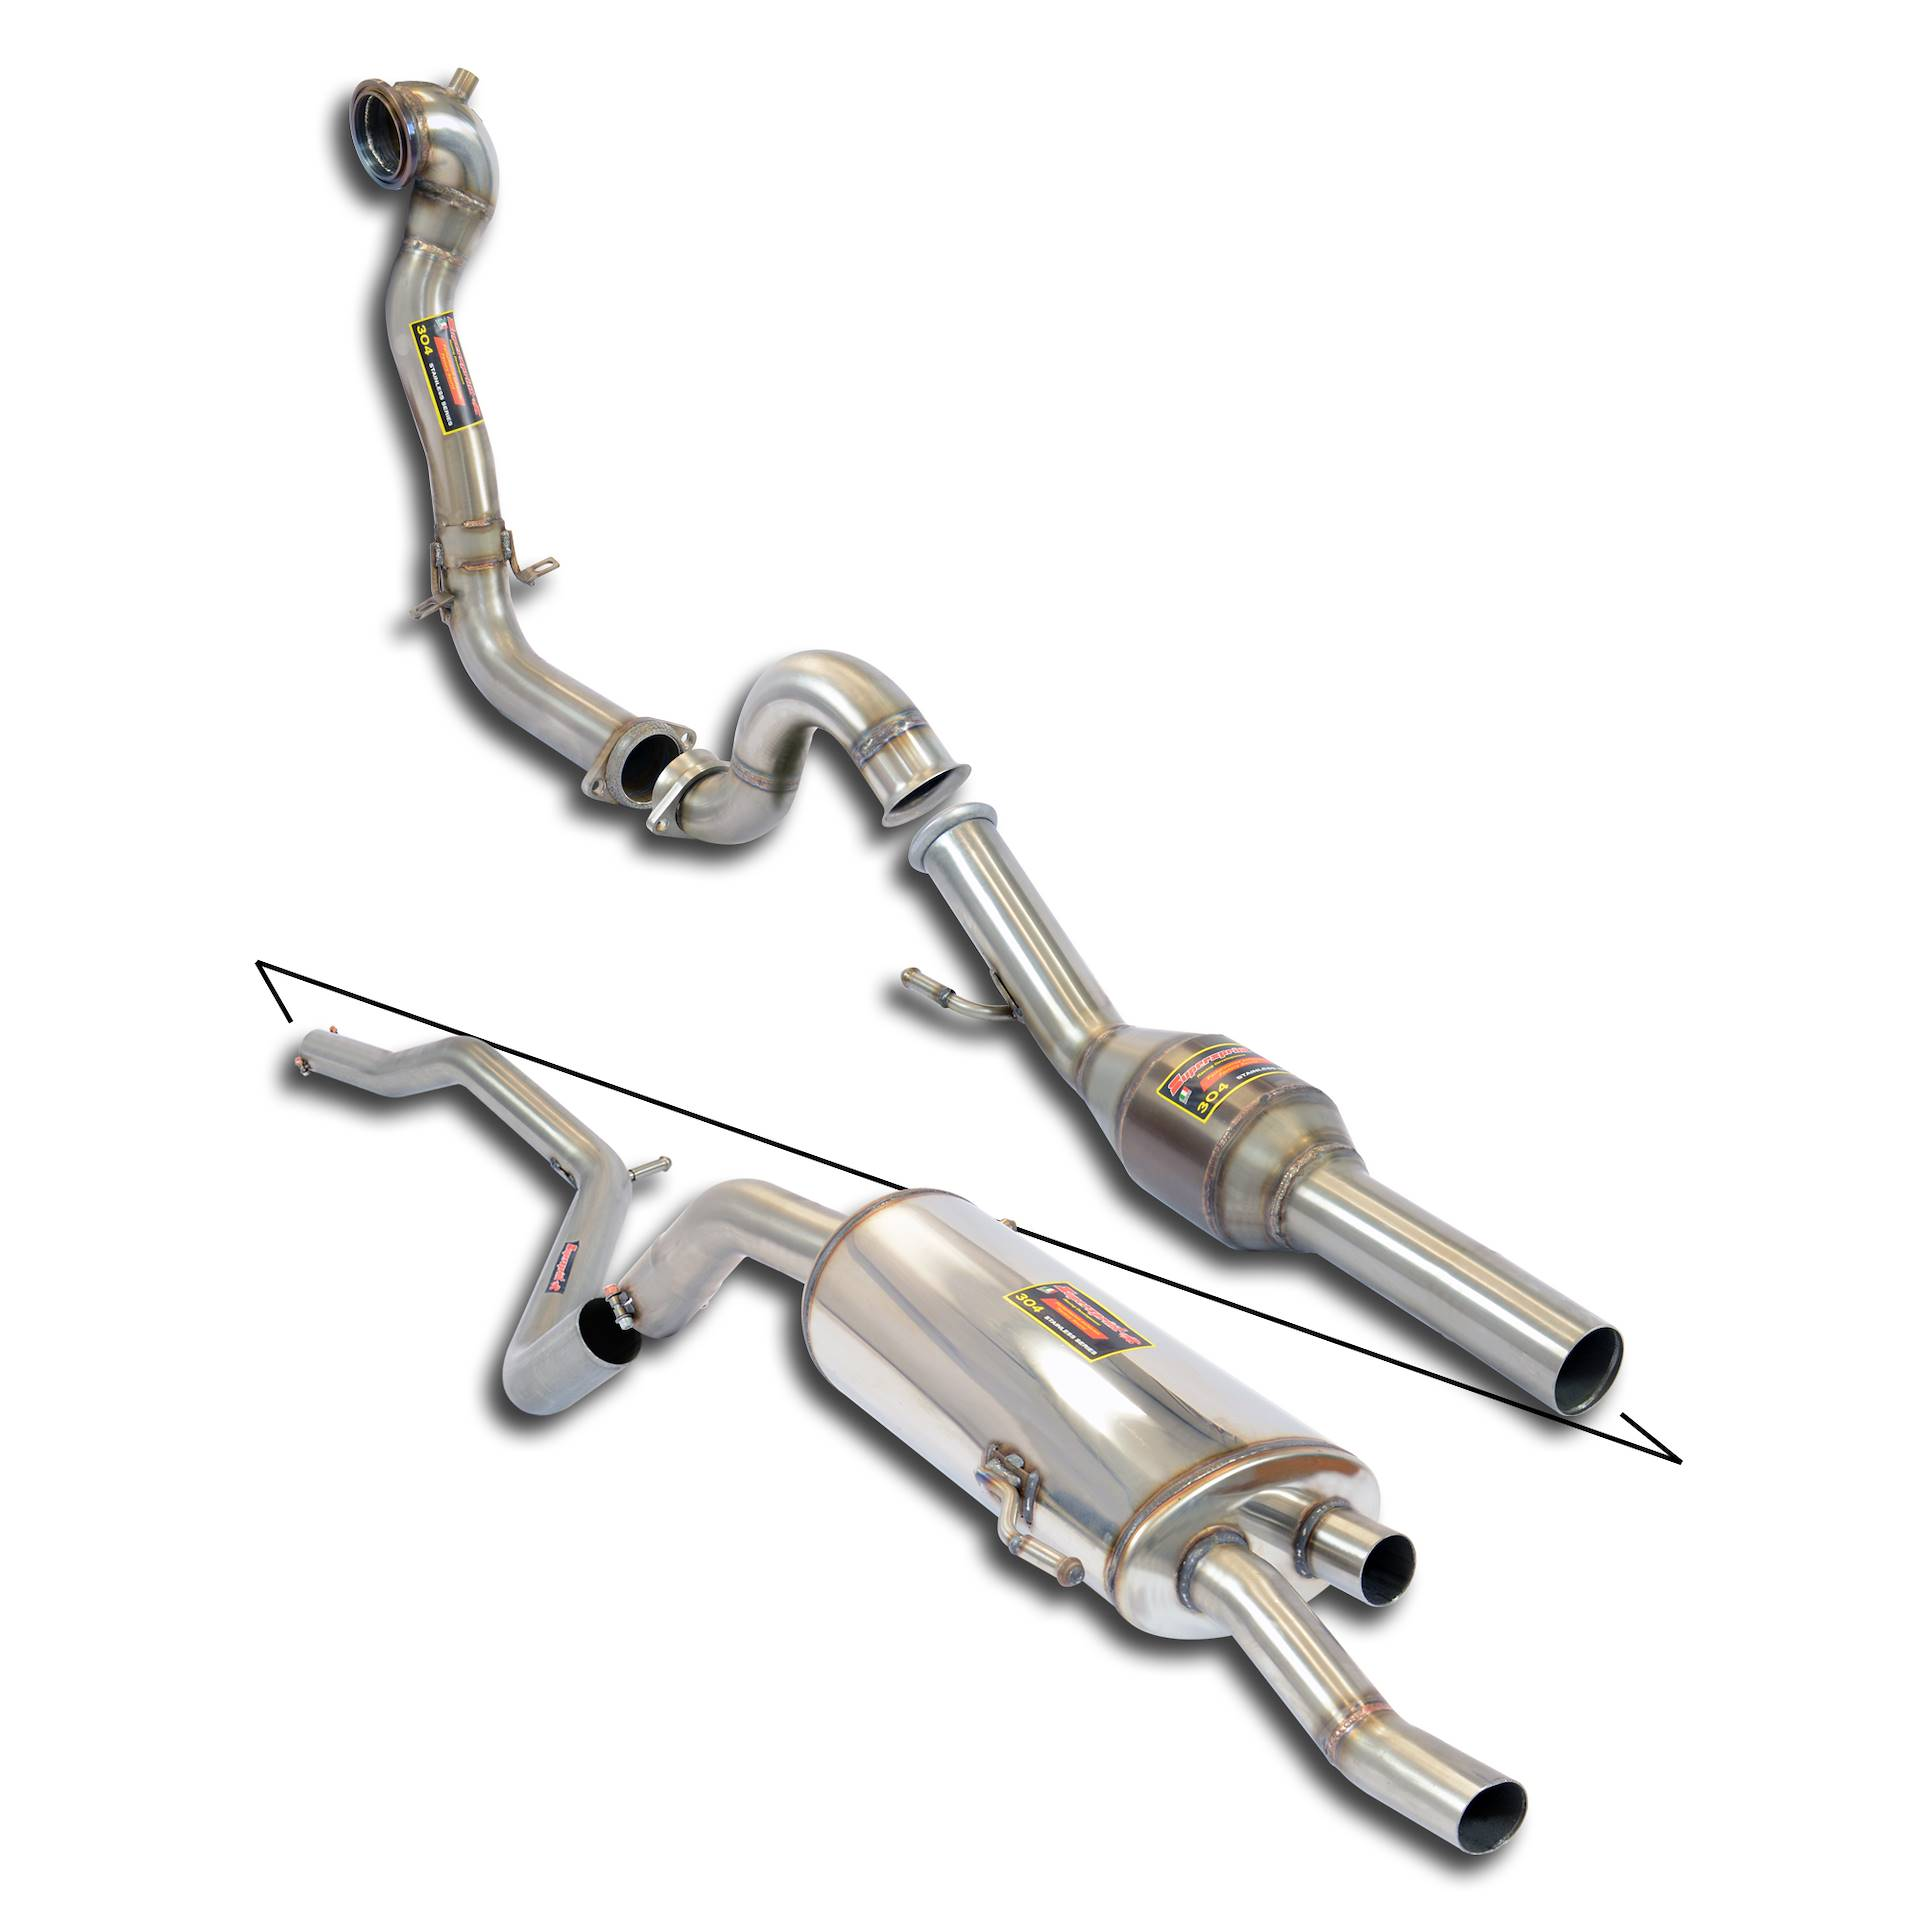 Peugeot - PEUGEOT RCZ R 1.6T (270 Hp) 2013 -> 2015 Sport performance pack, performance exhaust systems